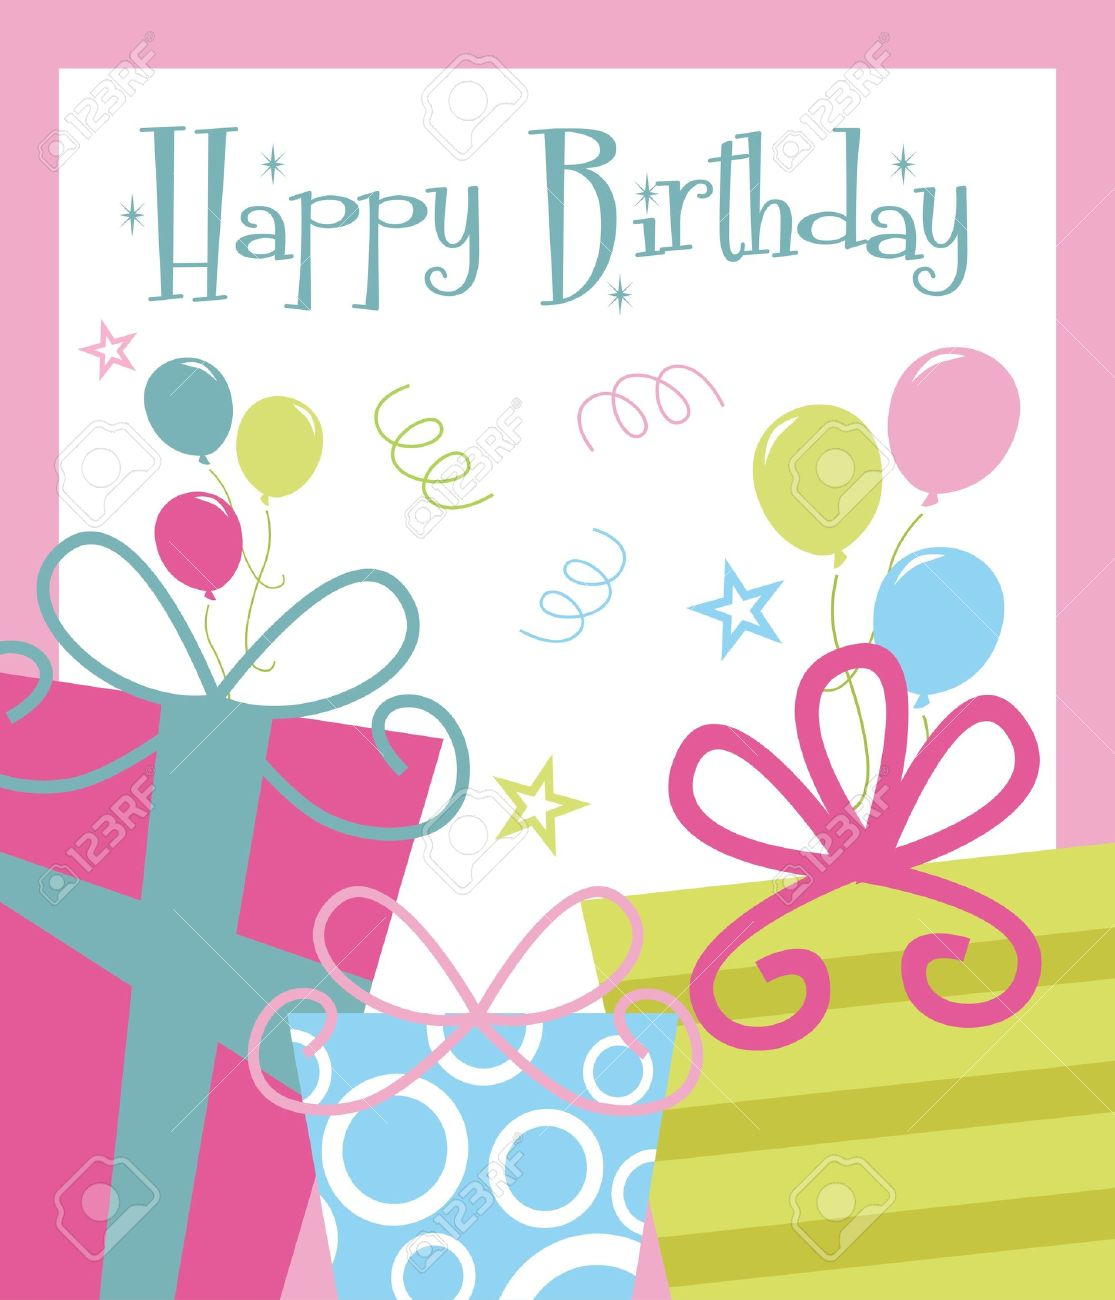 happy birthday greeting card design ; 20855088-happy-birthday-greeting-card-illustration